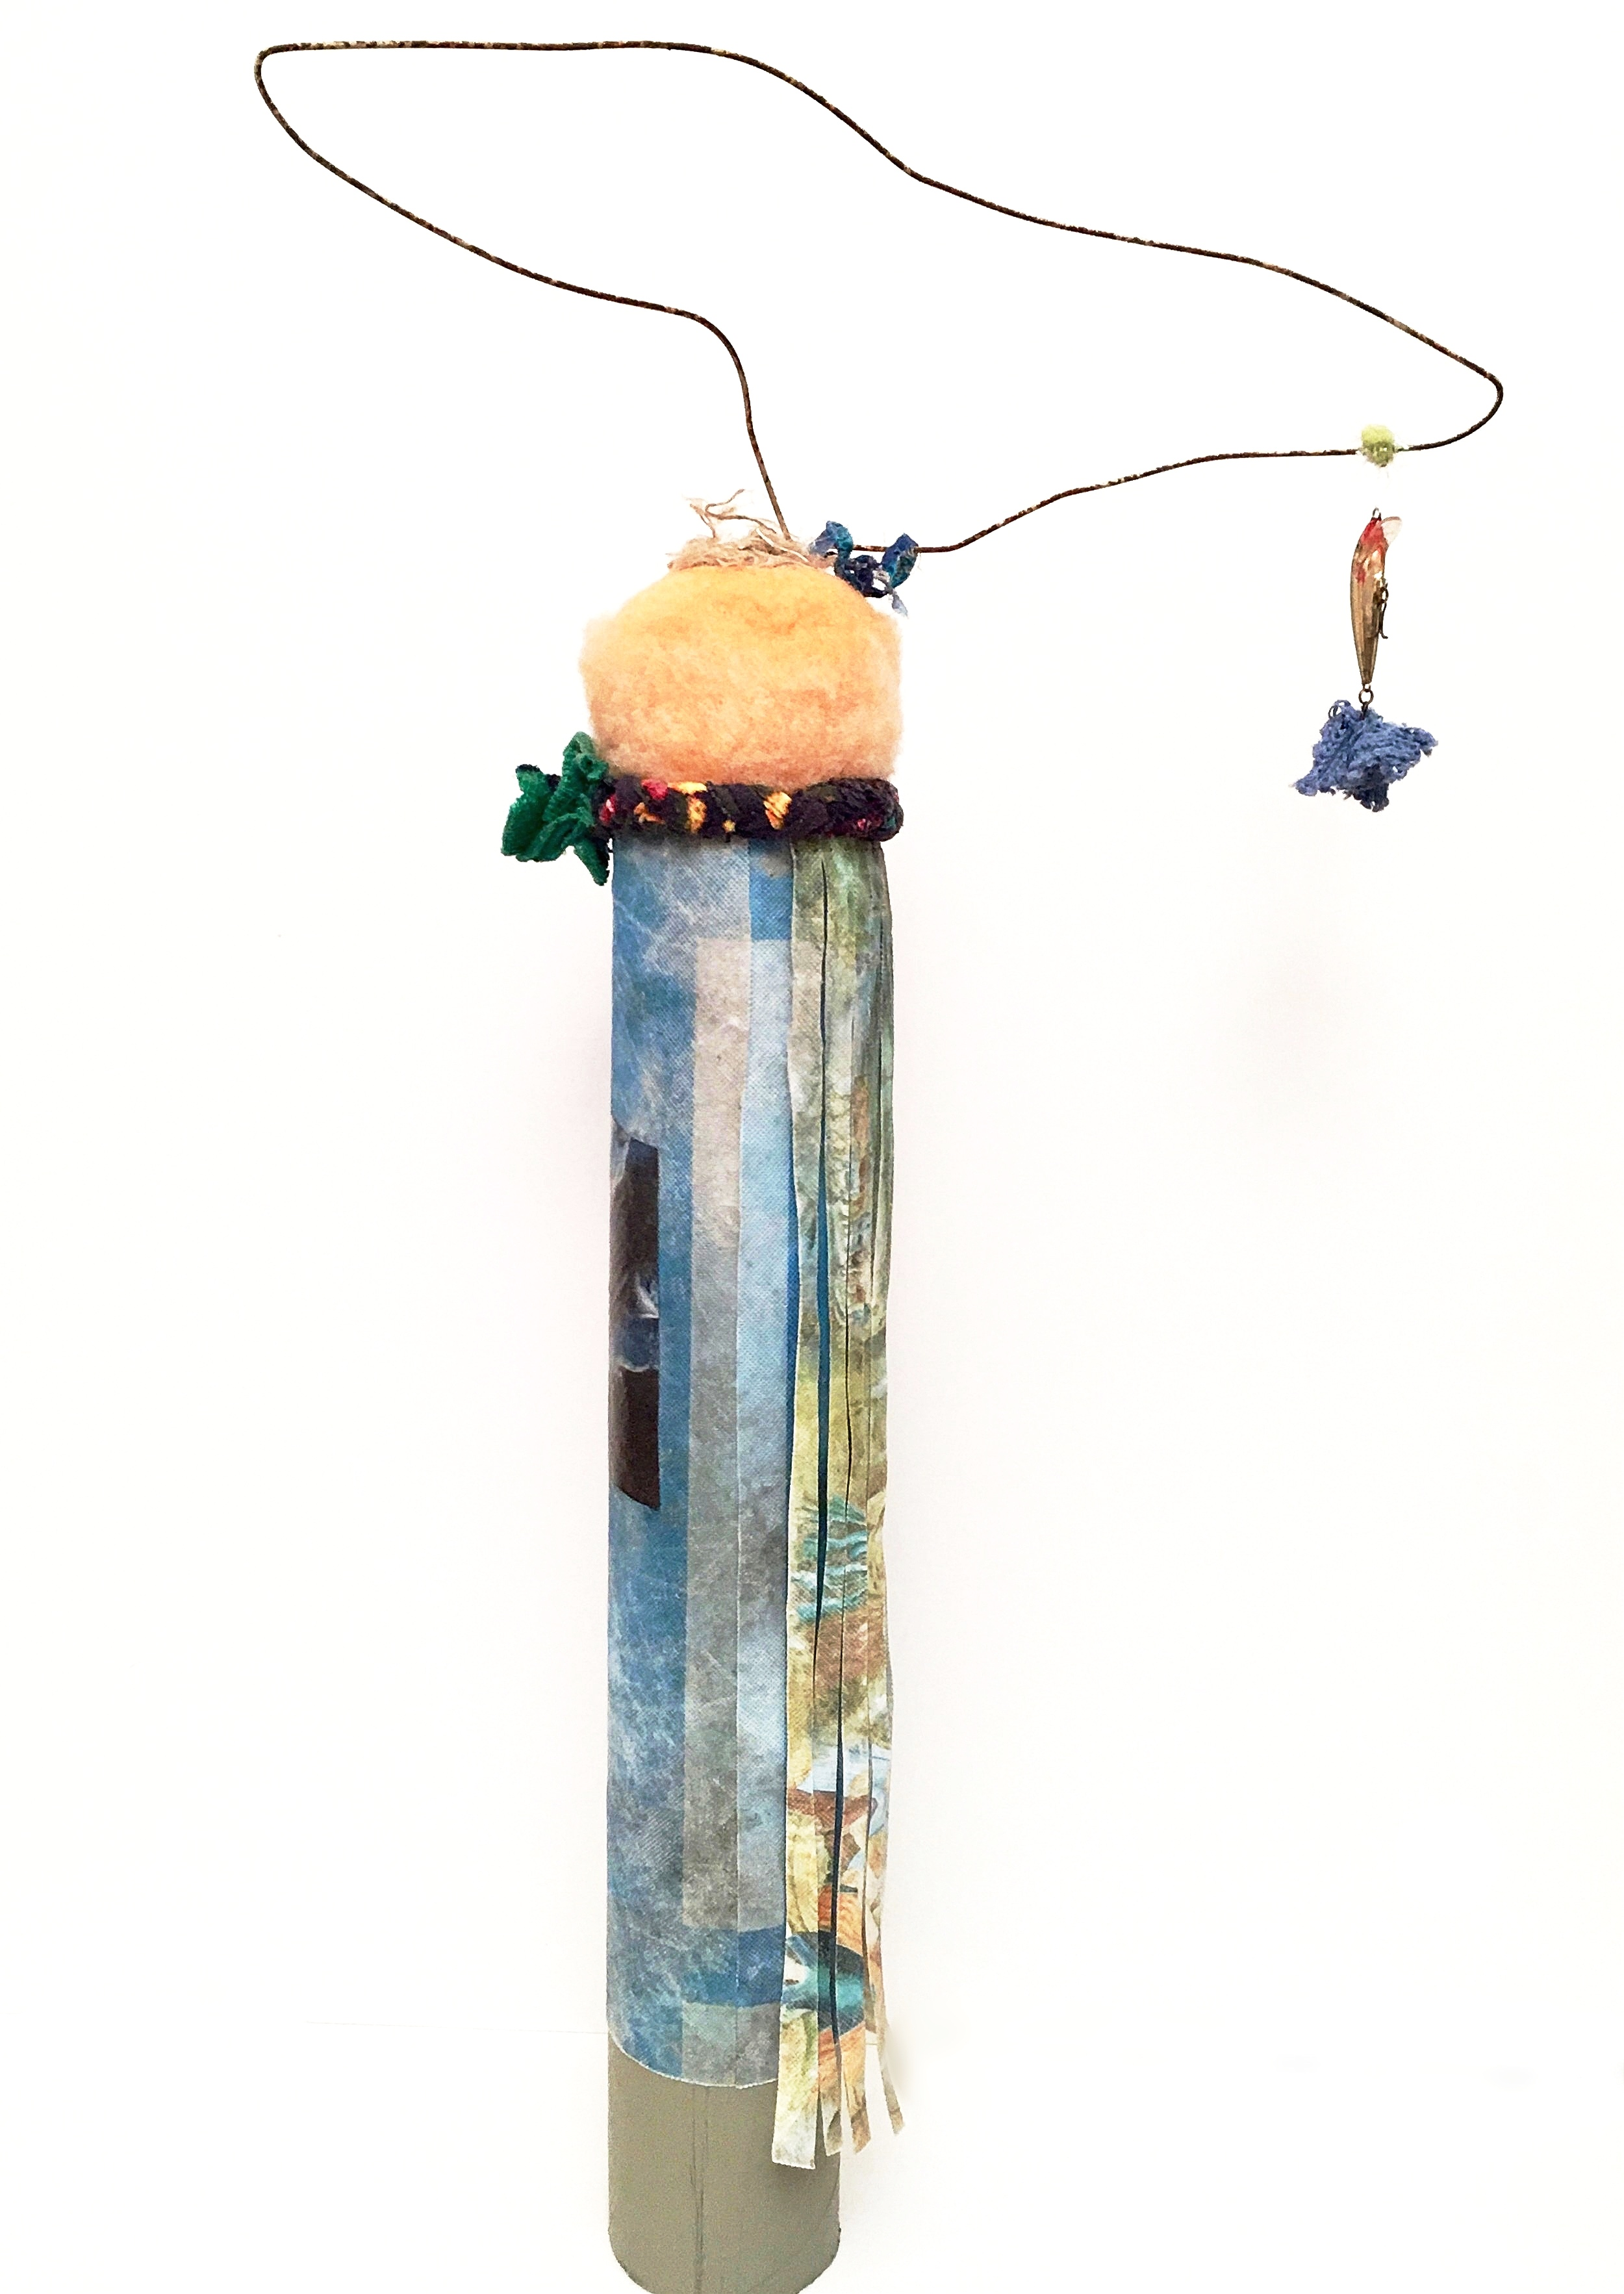 """Bluey with Lure   Basmati rice sack, woven textiles, paint sponge, fibers, rusty hanger, fishing lure, collaged paper, threads, acrylic on industrial cardboard tube  29 x 15½"""" round  2017"""